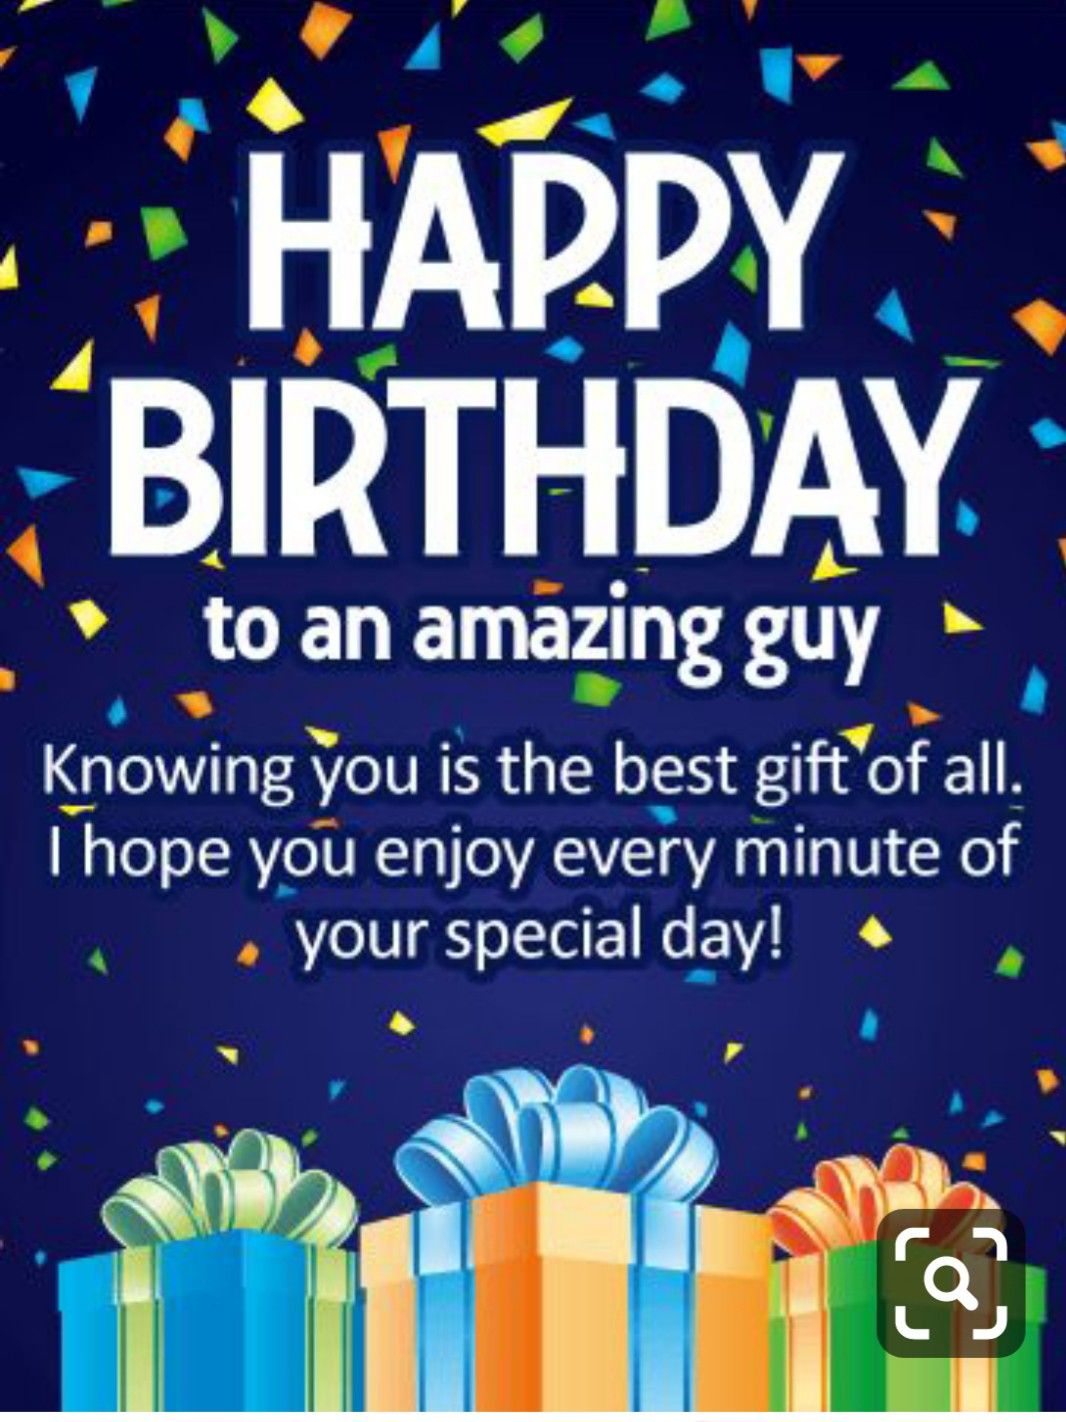 Pin by Lauren Wright on Birthday & Greeting Cards